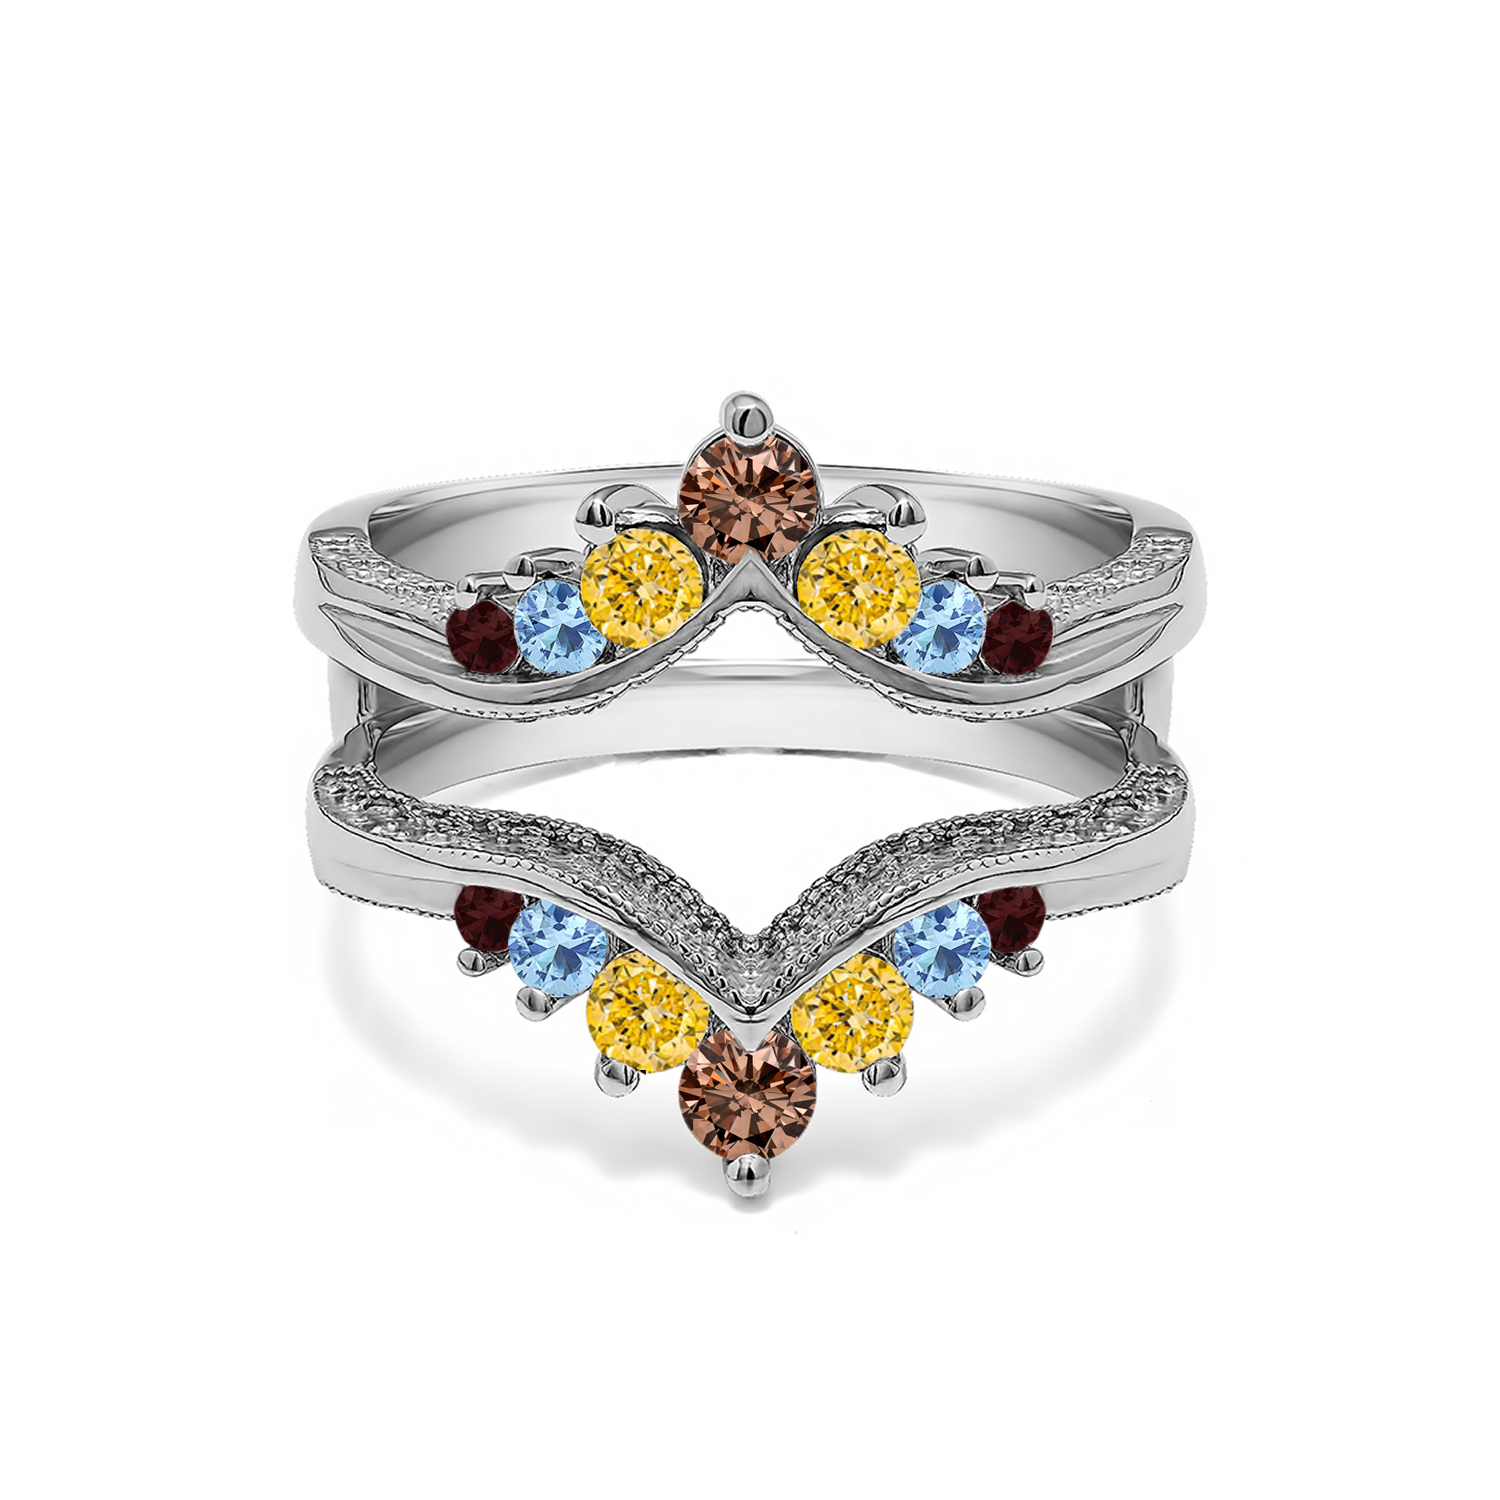 Genuine Birthstone Chevron Style Ring Guard With Millgrained Edges And Filigree Cut Out Design